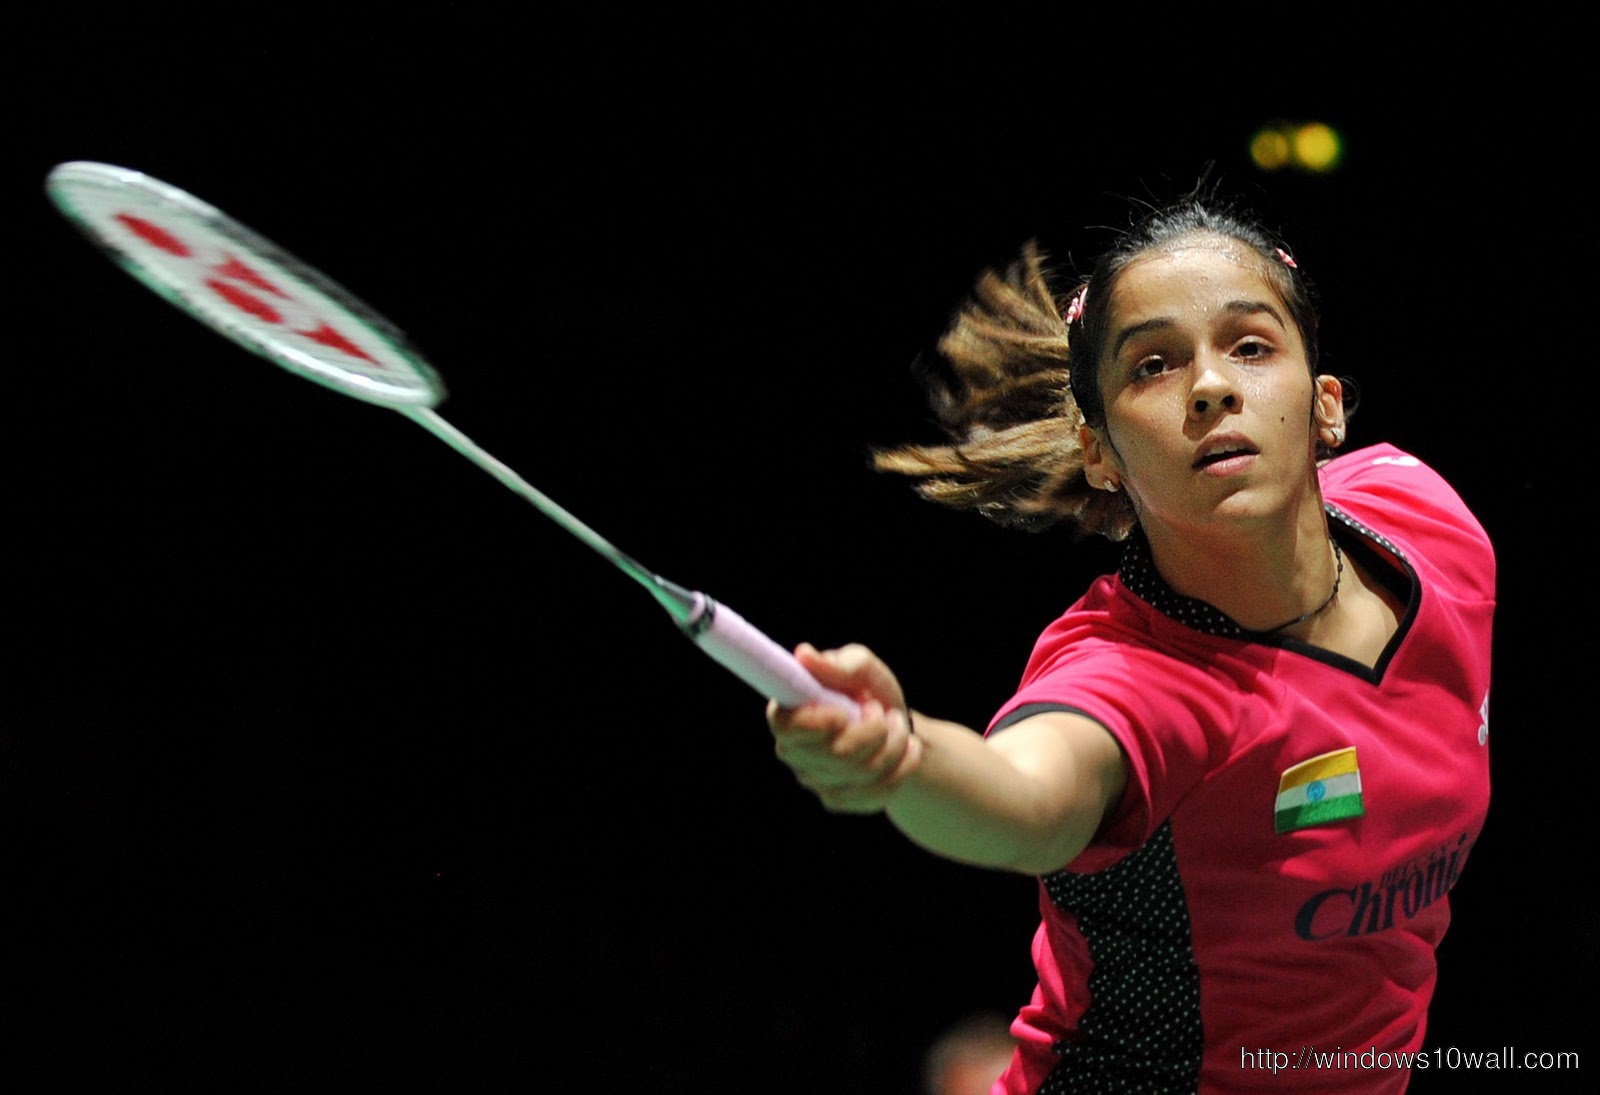 Saina Nehwal With Racket Background Wallpaper